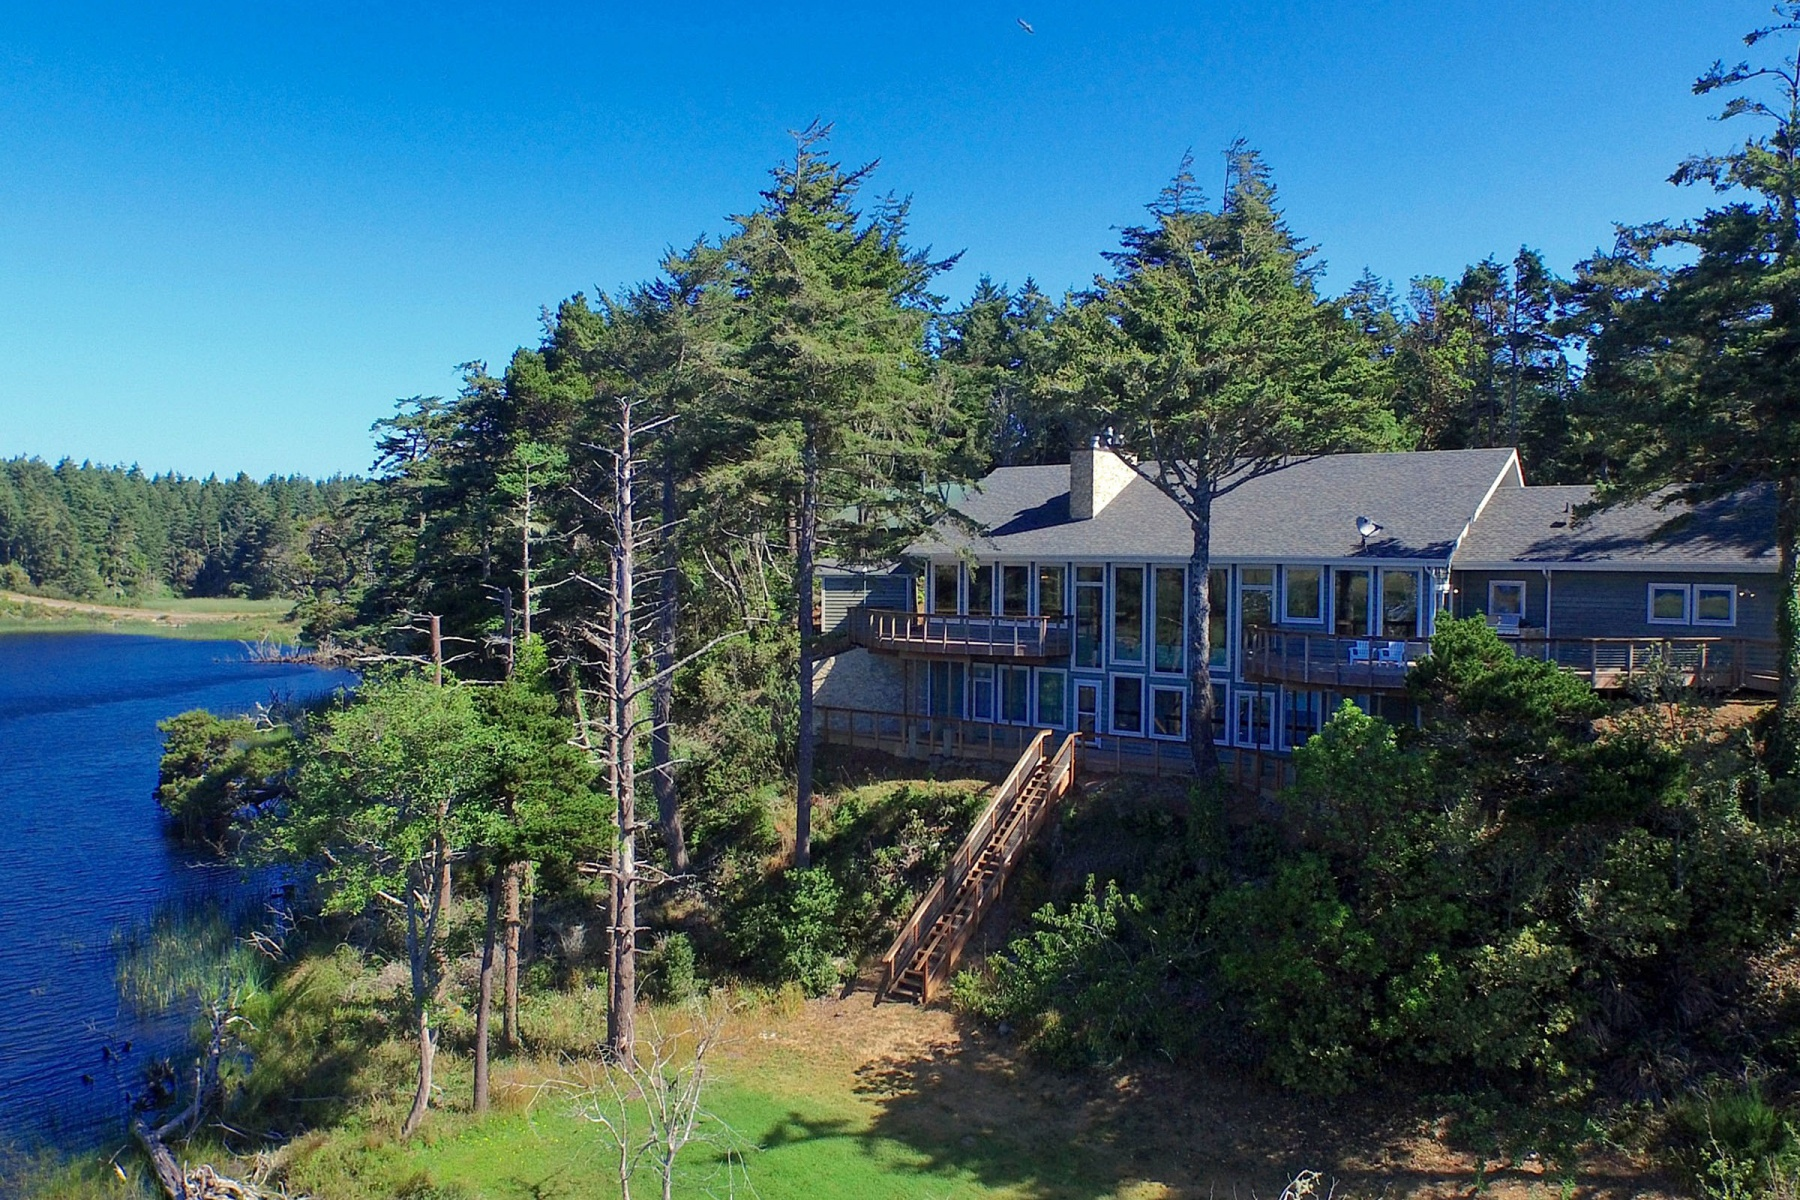 Property For Sale at 42380 GARRISON LAKE RD, PORT ORFORD